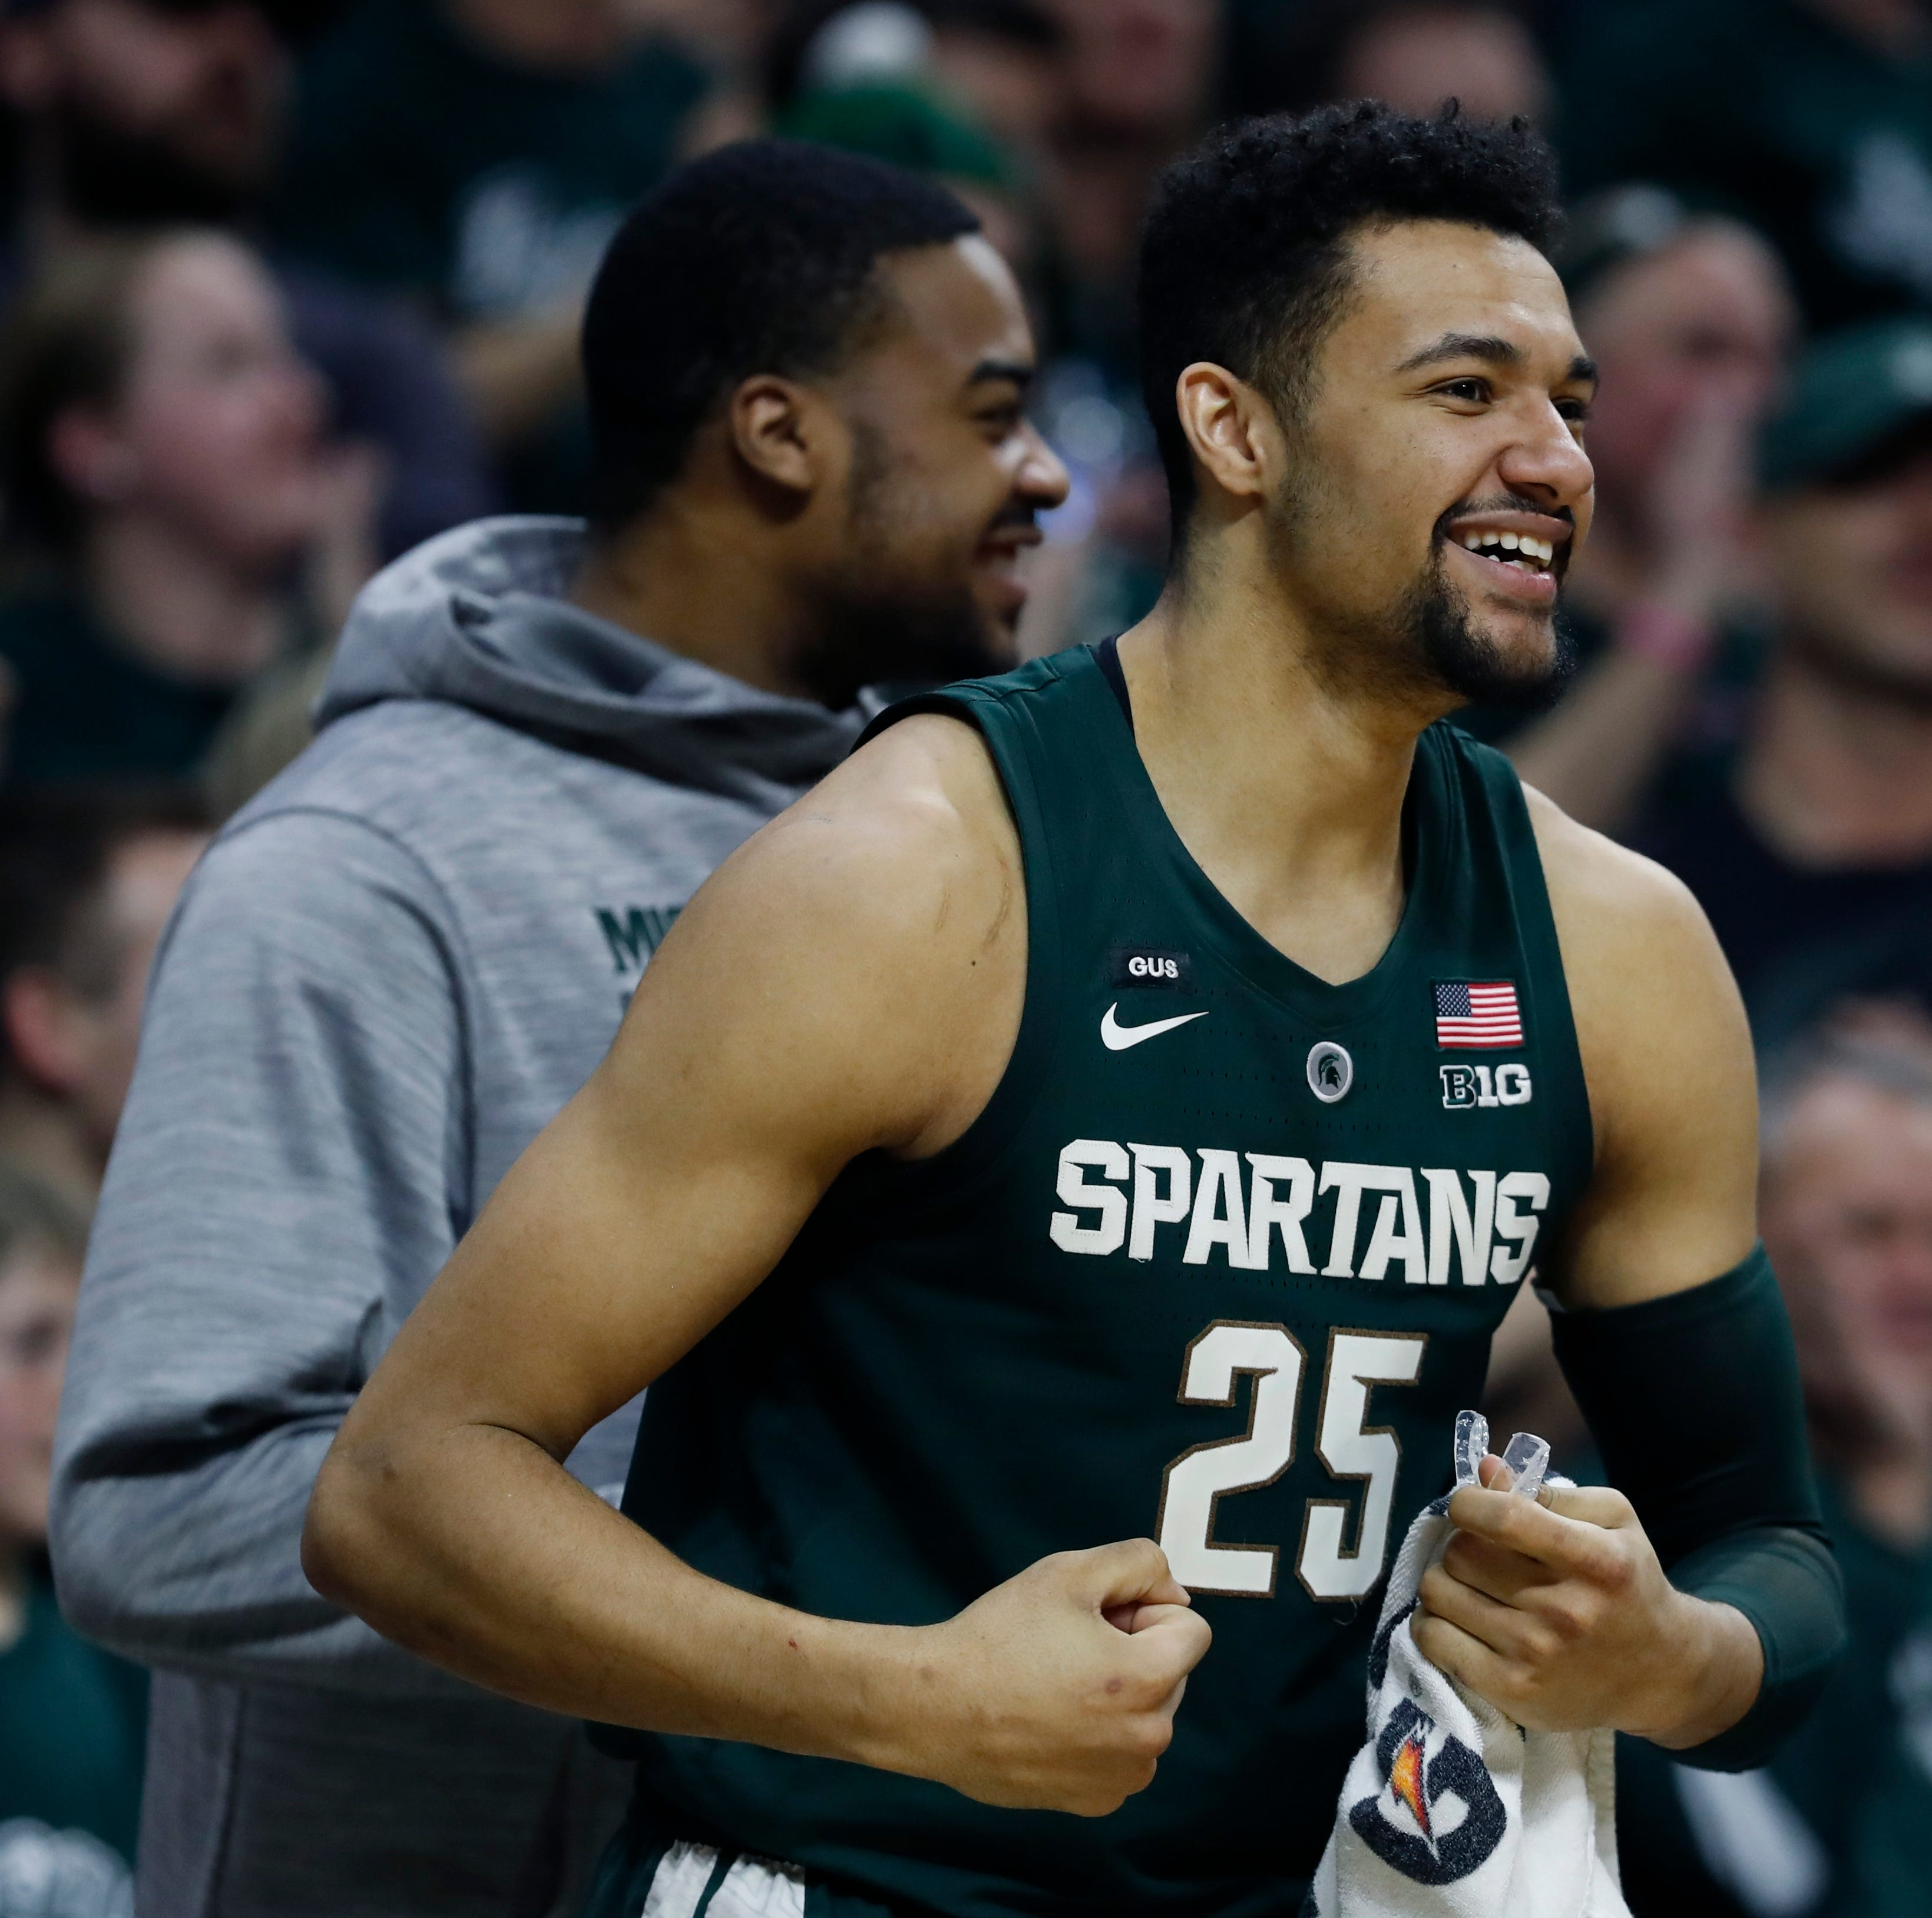 Improbable Purdue loss reignites Michigan State's Big Ten banner hopes